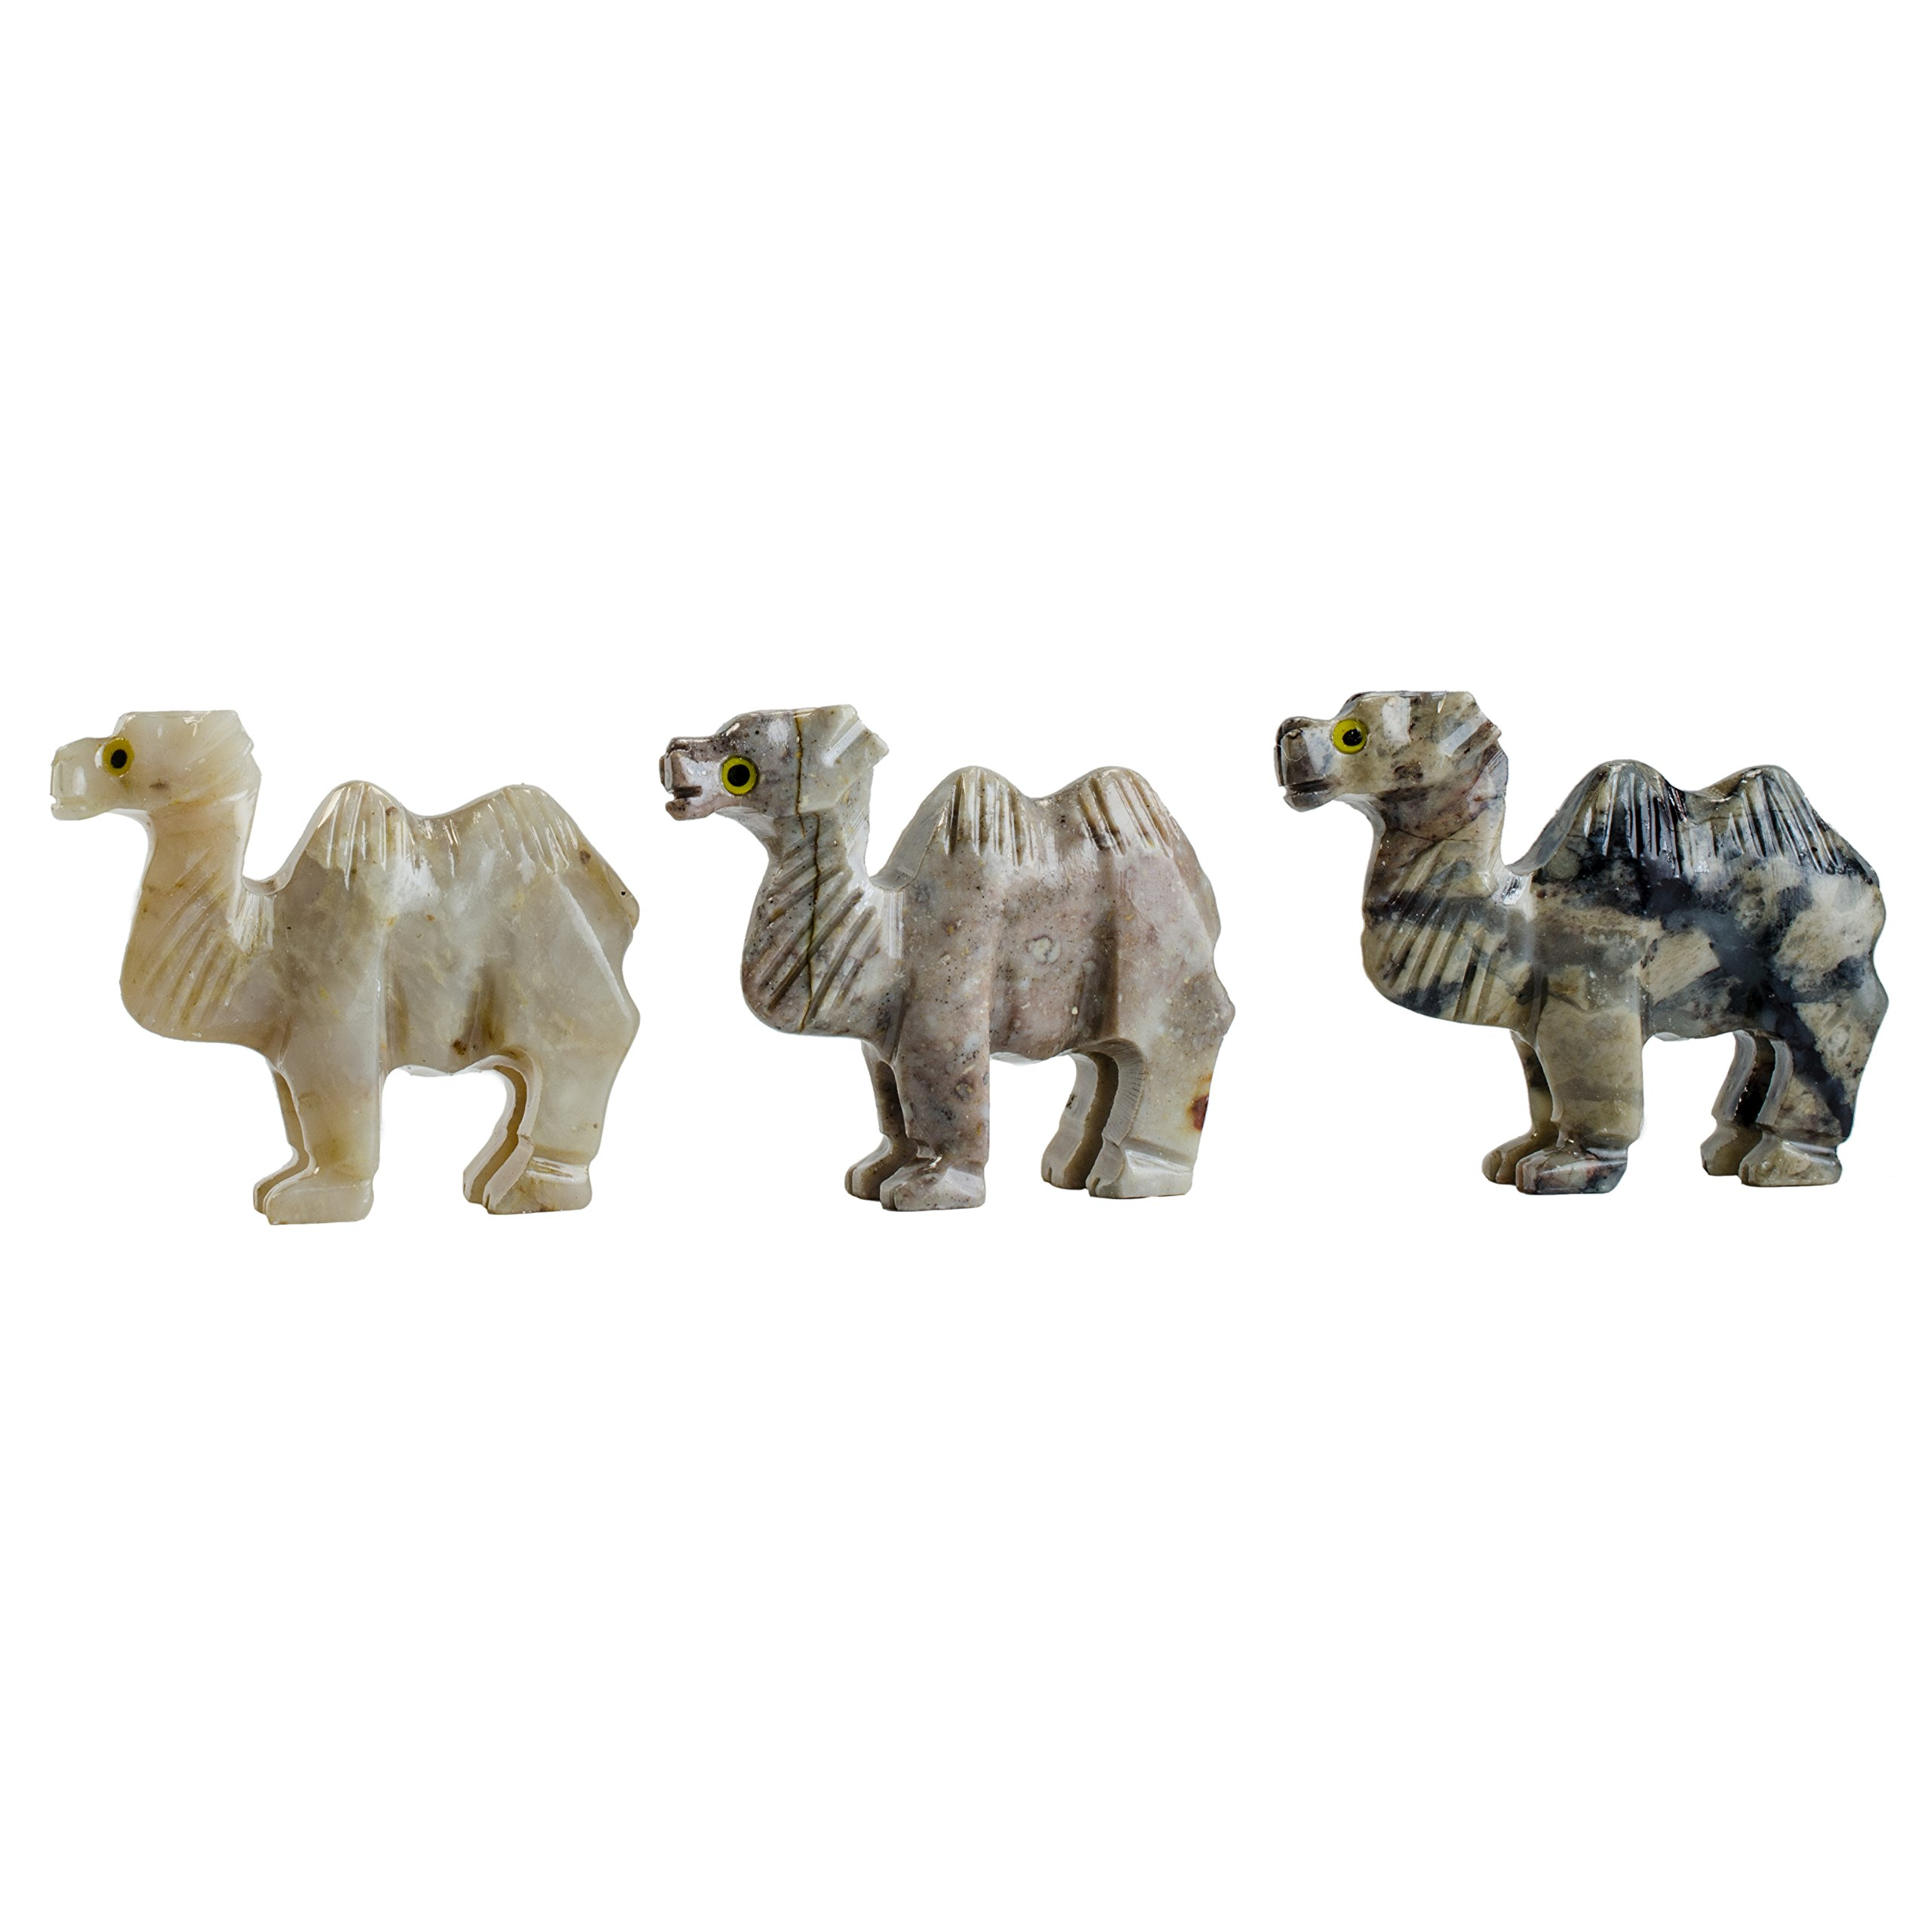 Digging Dolls : 10 pcs Artisan Camel Collectable Animal Figurine - Style 1 - Party Favors, Stocking Stuffers, Gifts, Collecting and More!